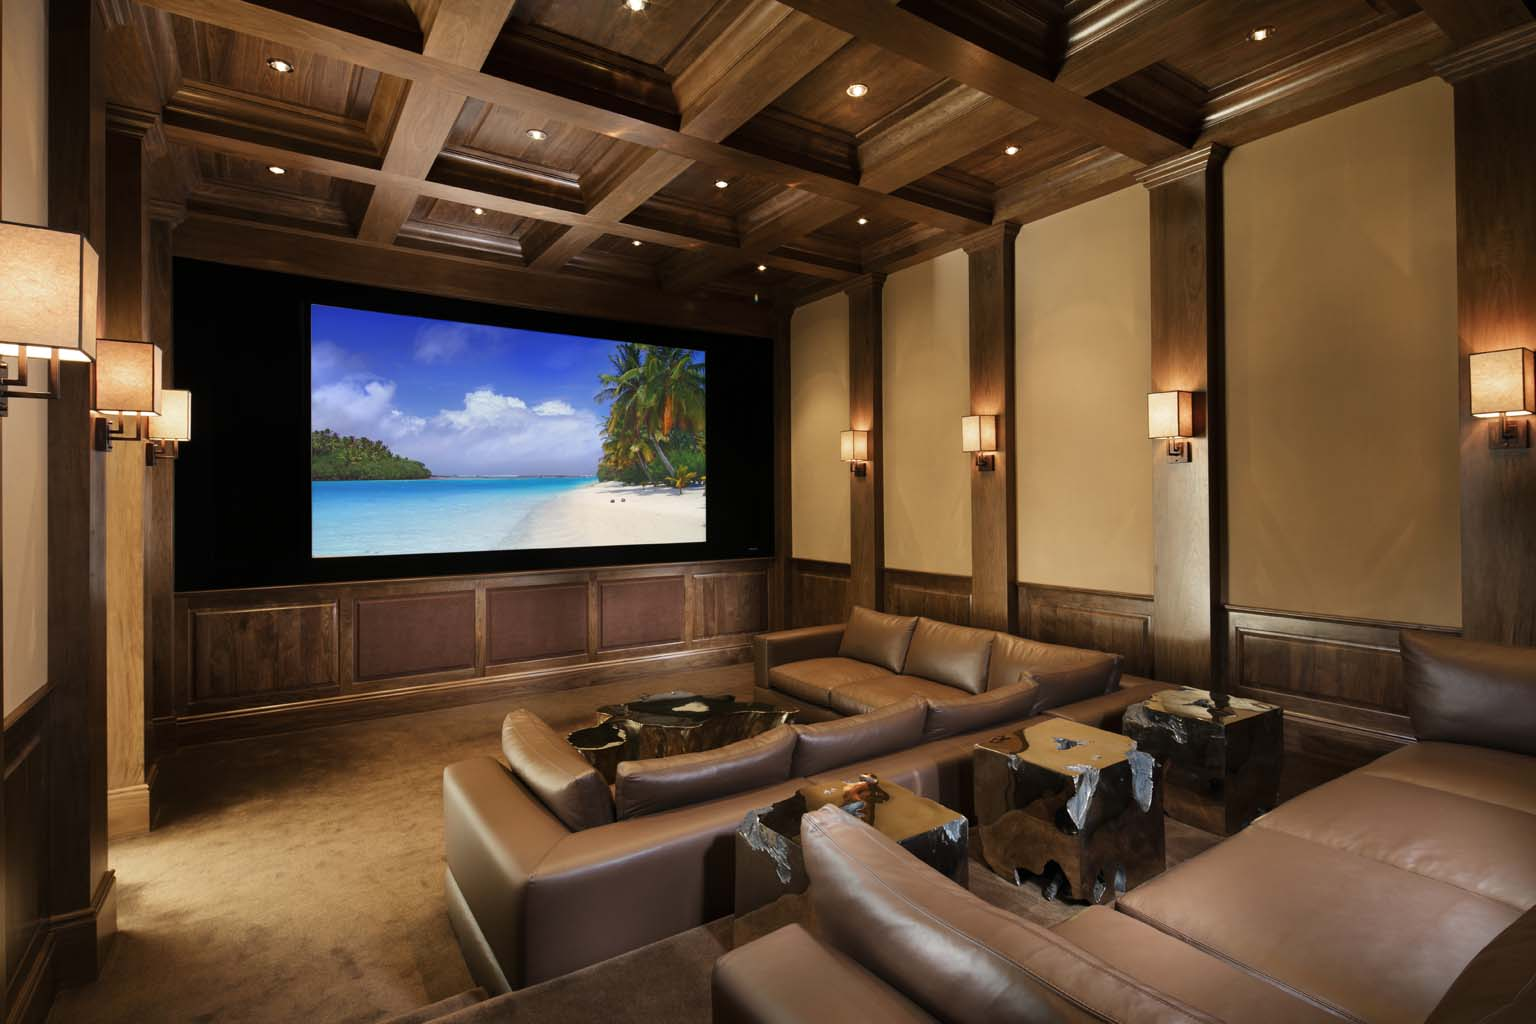 Tappeto Home Theatre Cinema In Casa